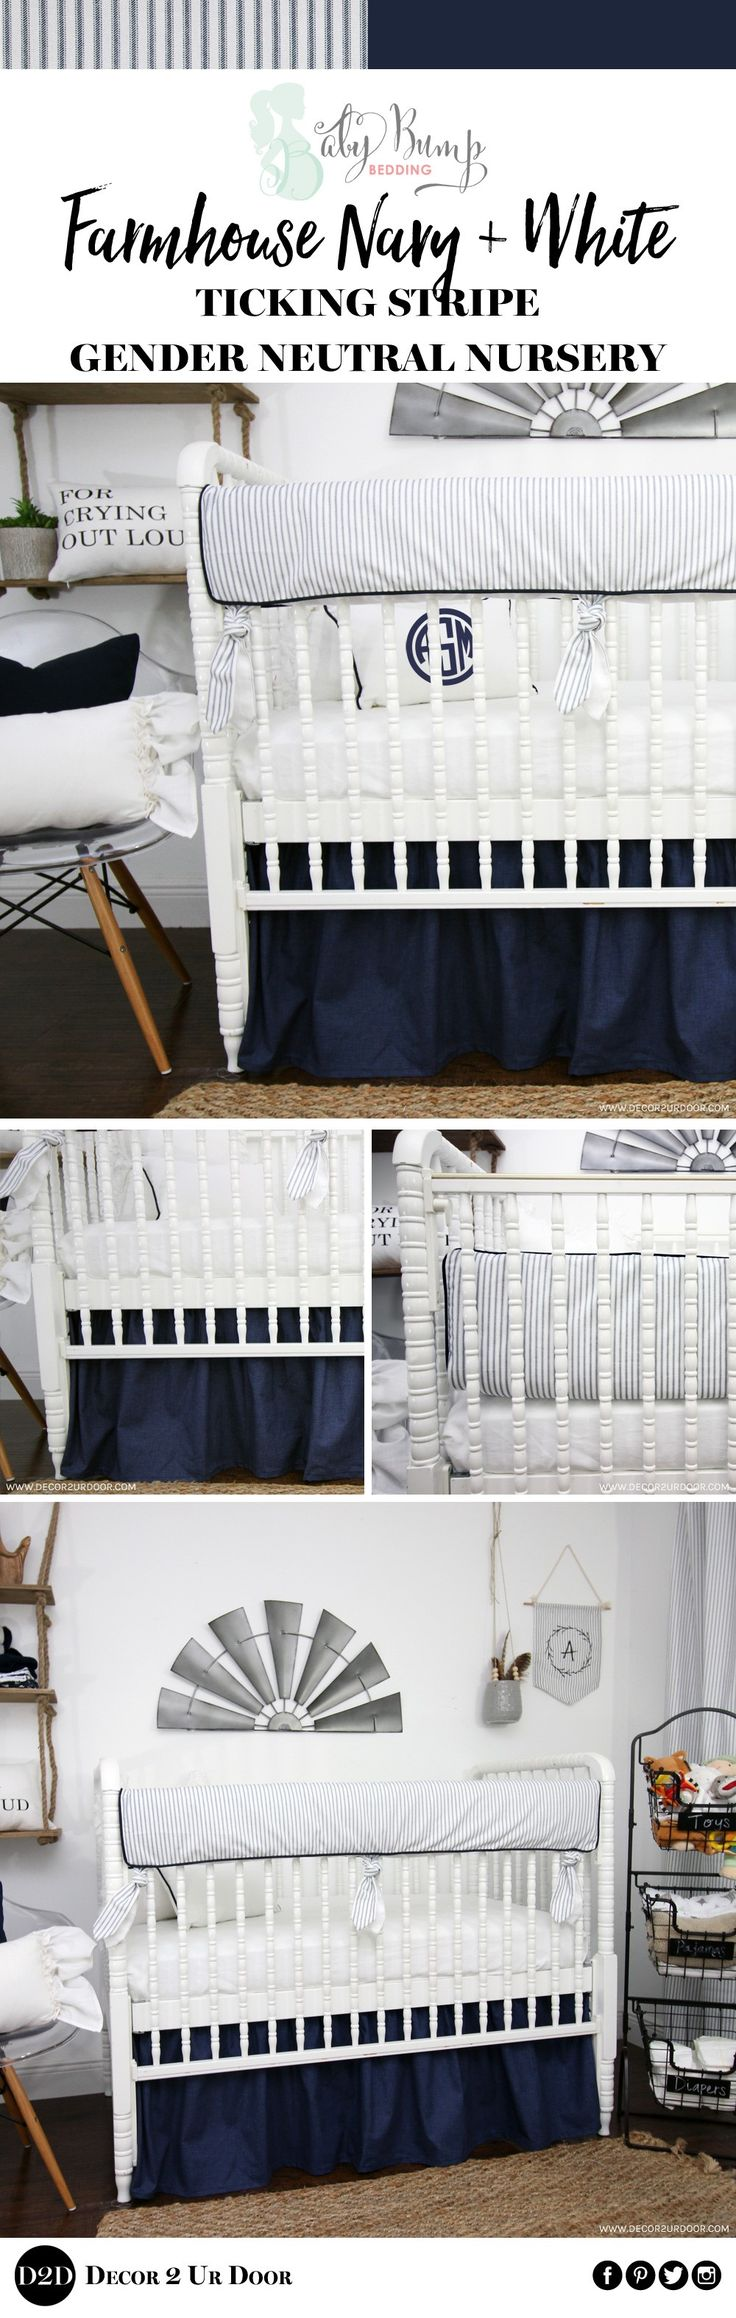 Tick tock, tick tock! Your dream farmhouse baby bedding is waiting! This navy and white ticking stripe features ourBBB exclusive(and brand new!) ties. Navy and white - and everything right! We adore this farmhouse nursery bedding look complete with the most beautiful ties, frills, ticking stripe, and trim you have ever seen! Fixer Upper your baby nursery room - BBB style!